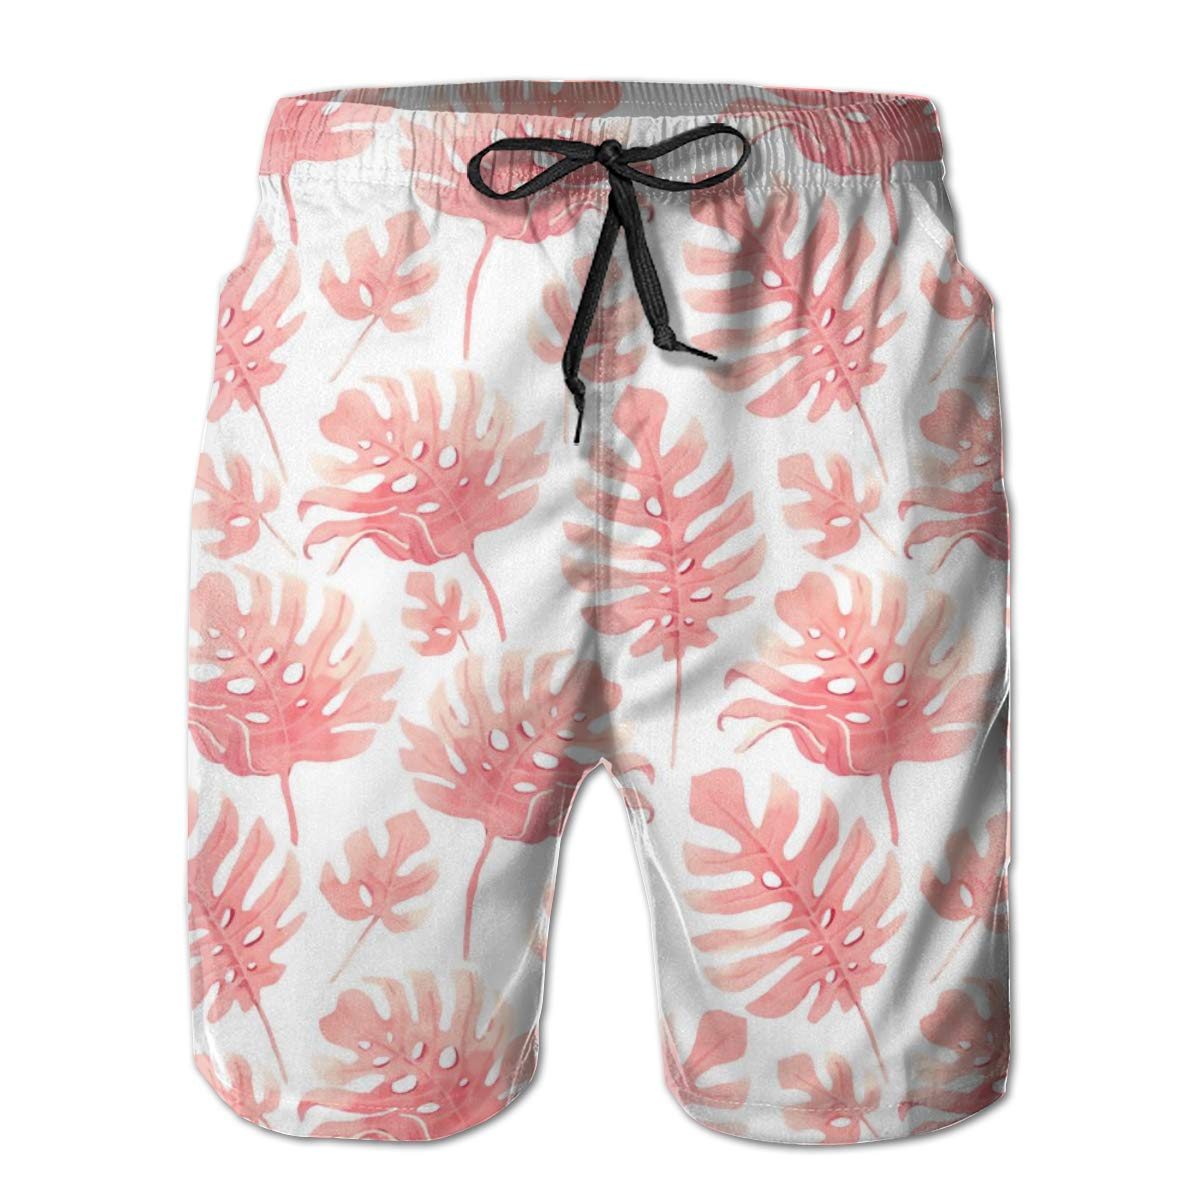 SARA NELL Mens Shorts Watercolor Tropical Palm Leaf Pattern Quick Dry Swim Trunks Beach Board Shorts